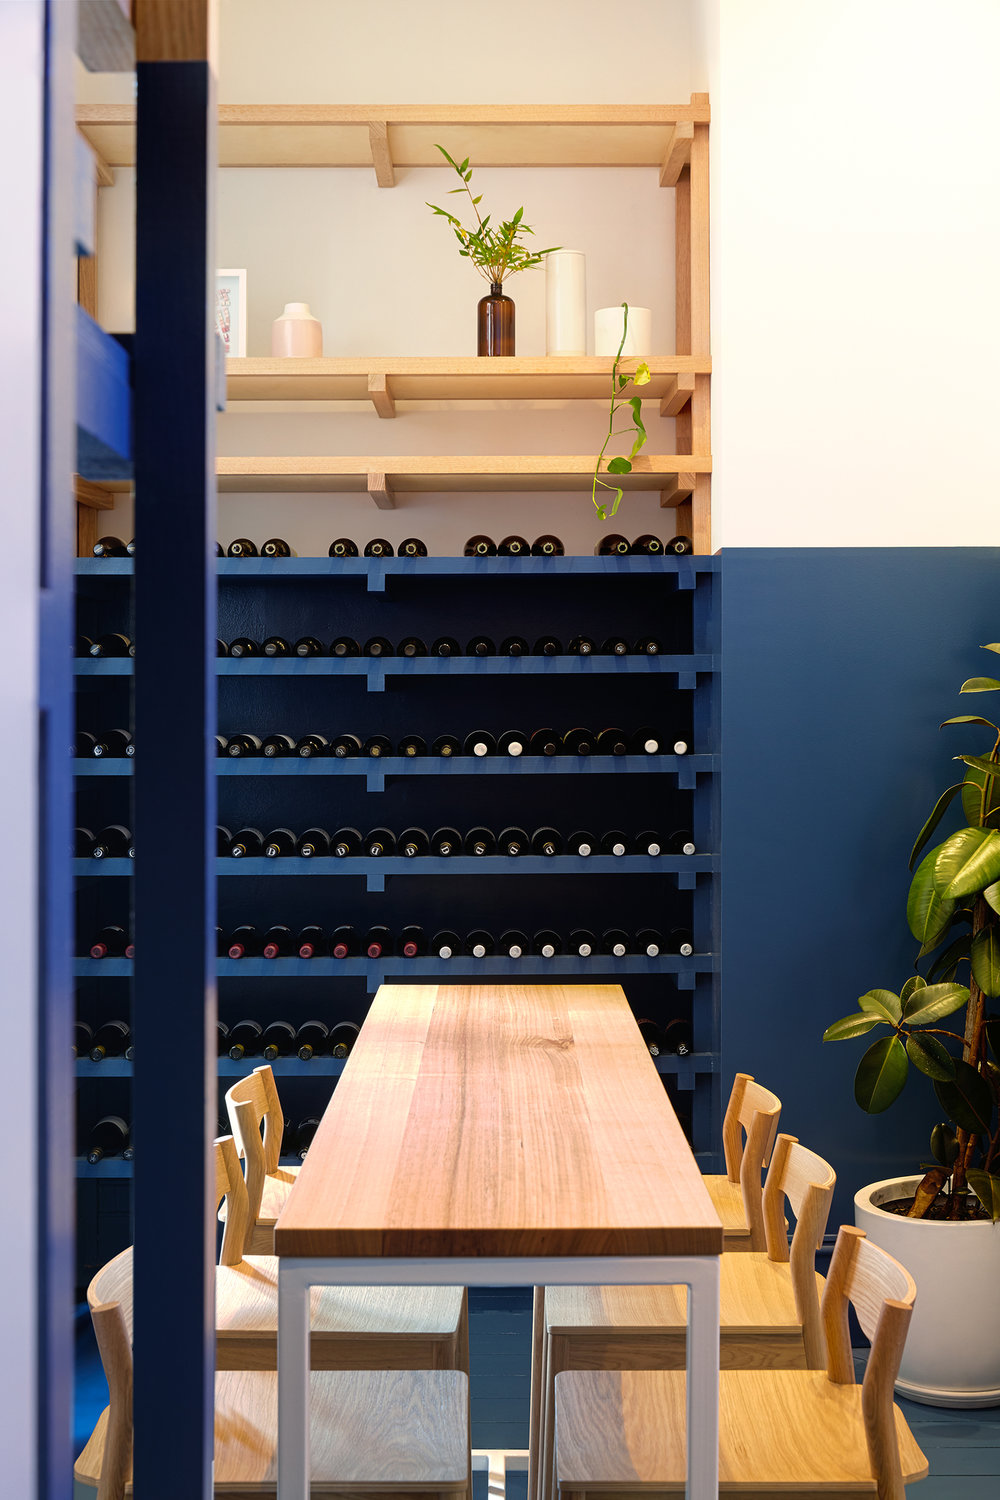 Level One wine racks